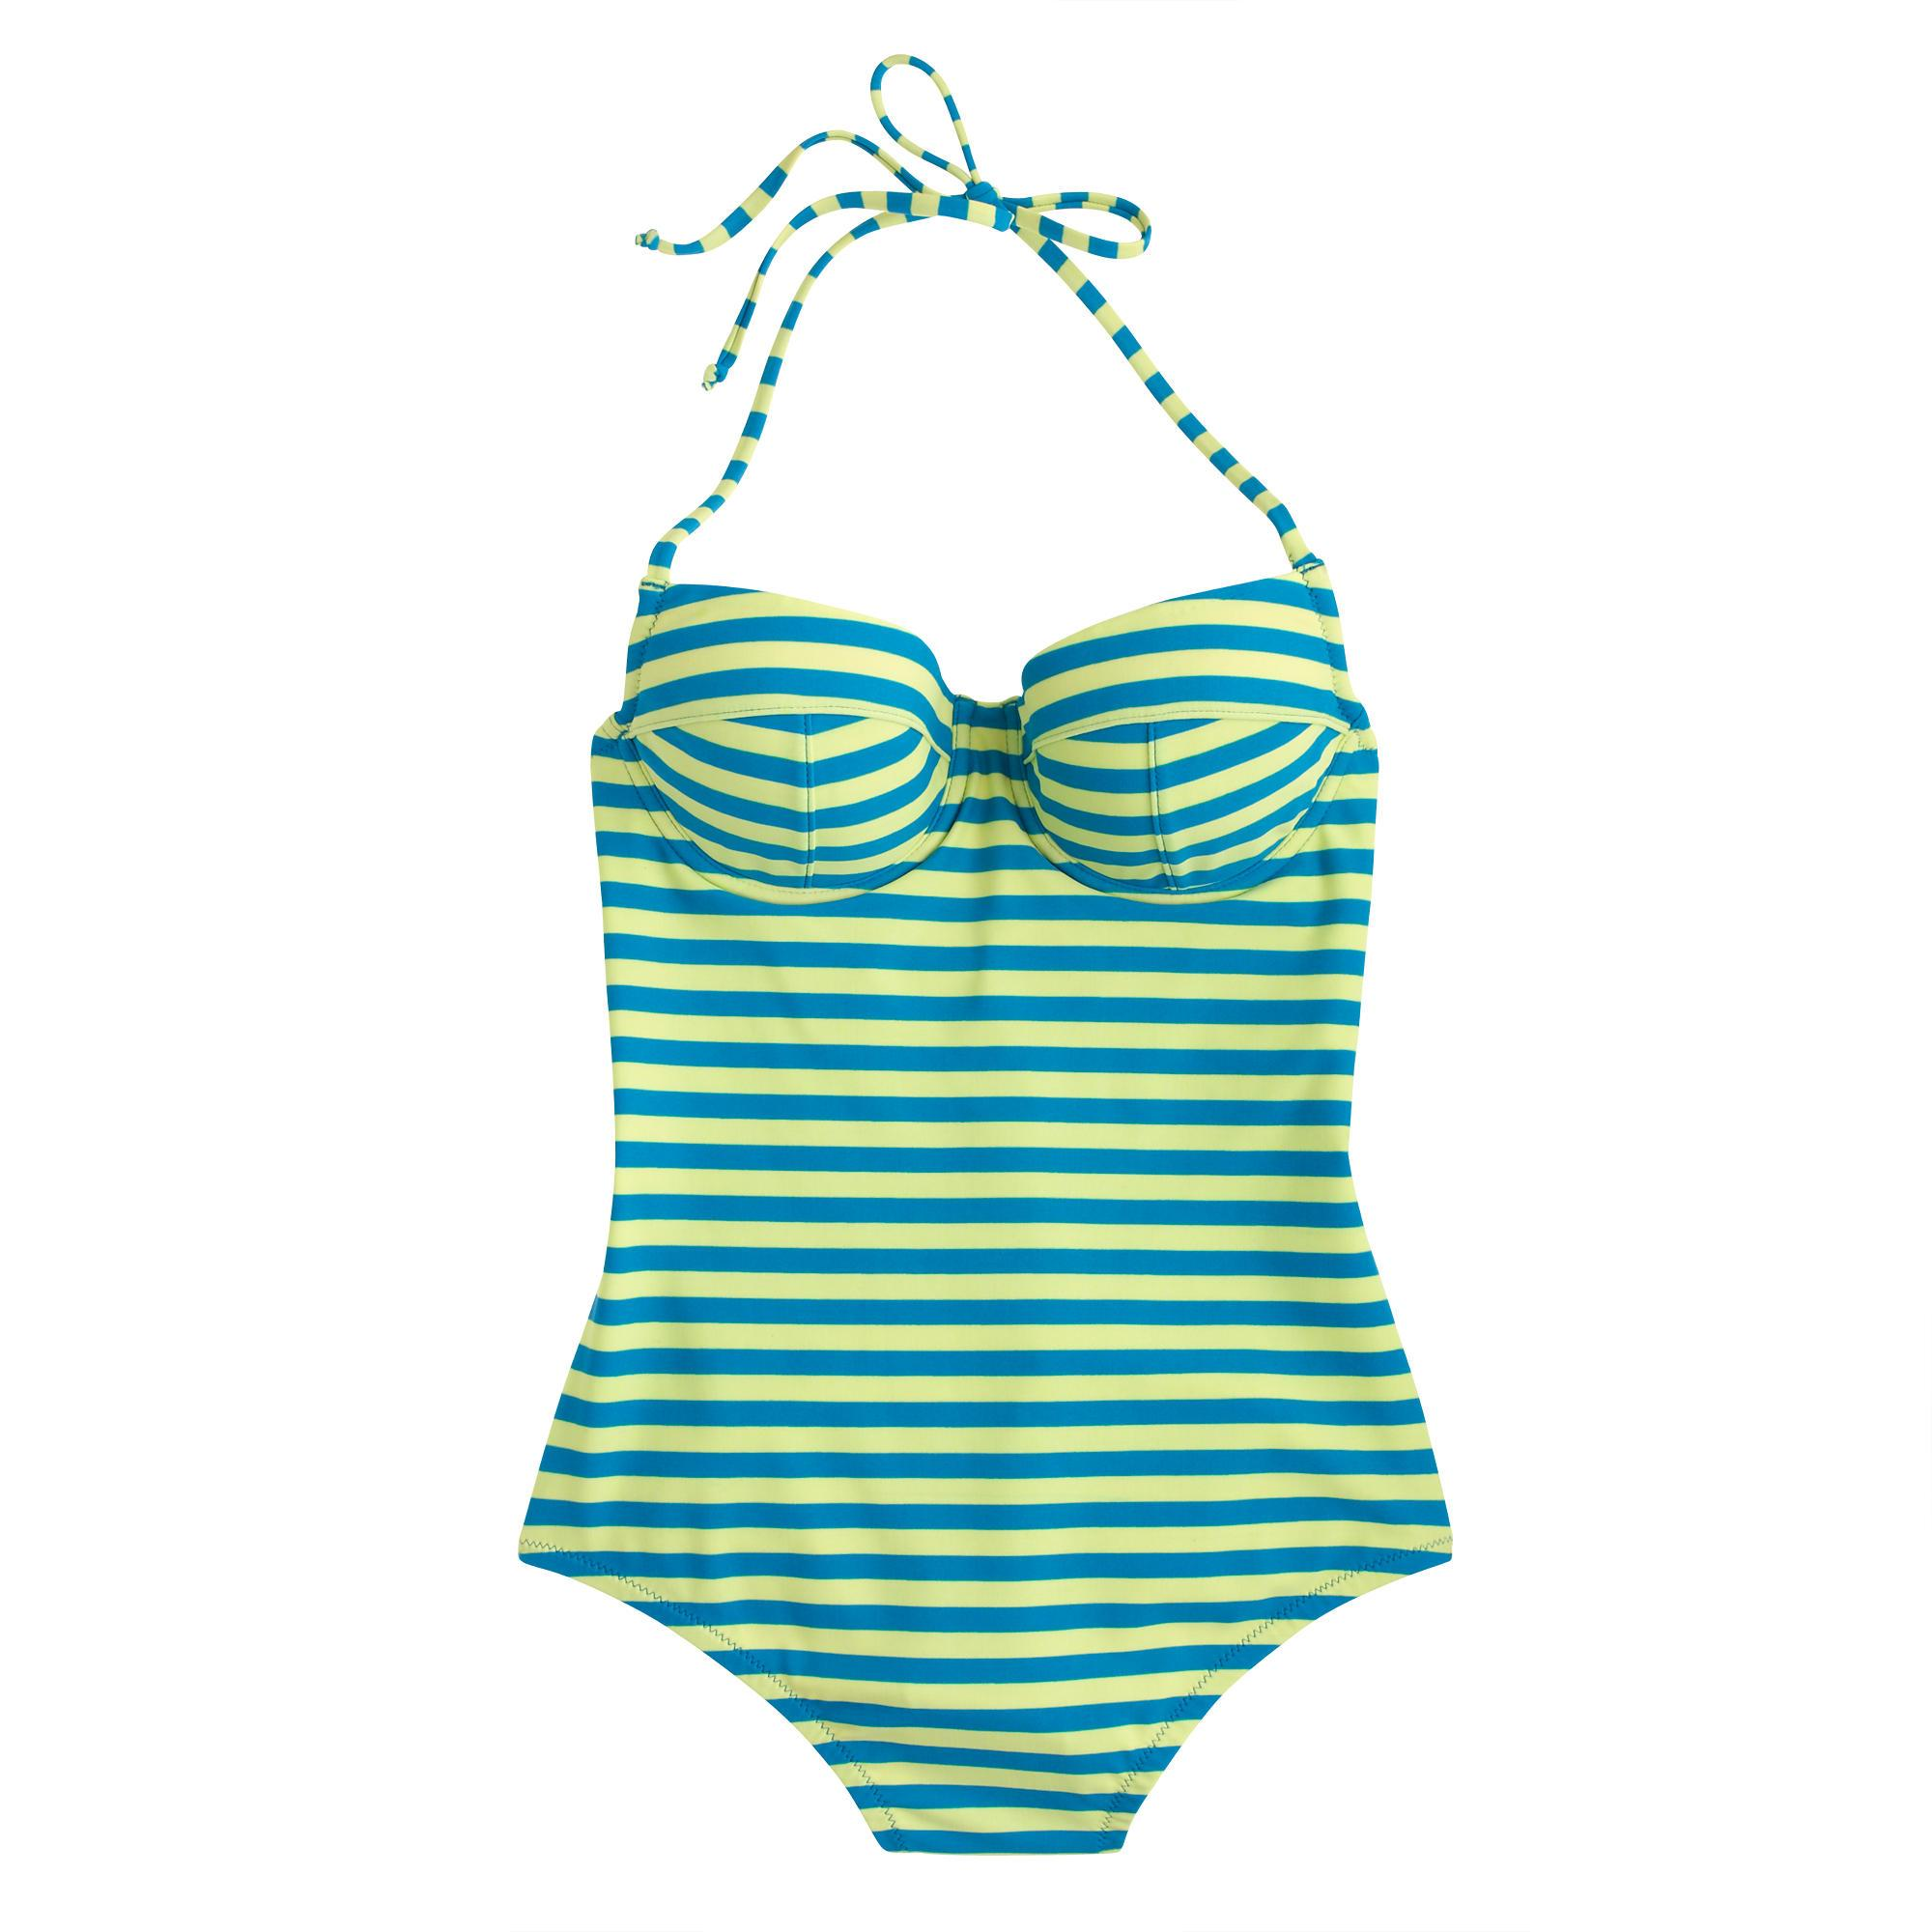 09b882ad29577 Lyst - J.Crew Dd-cup Striped Underwire One-piece Swimsuit in Blue